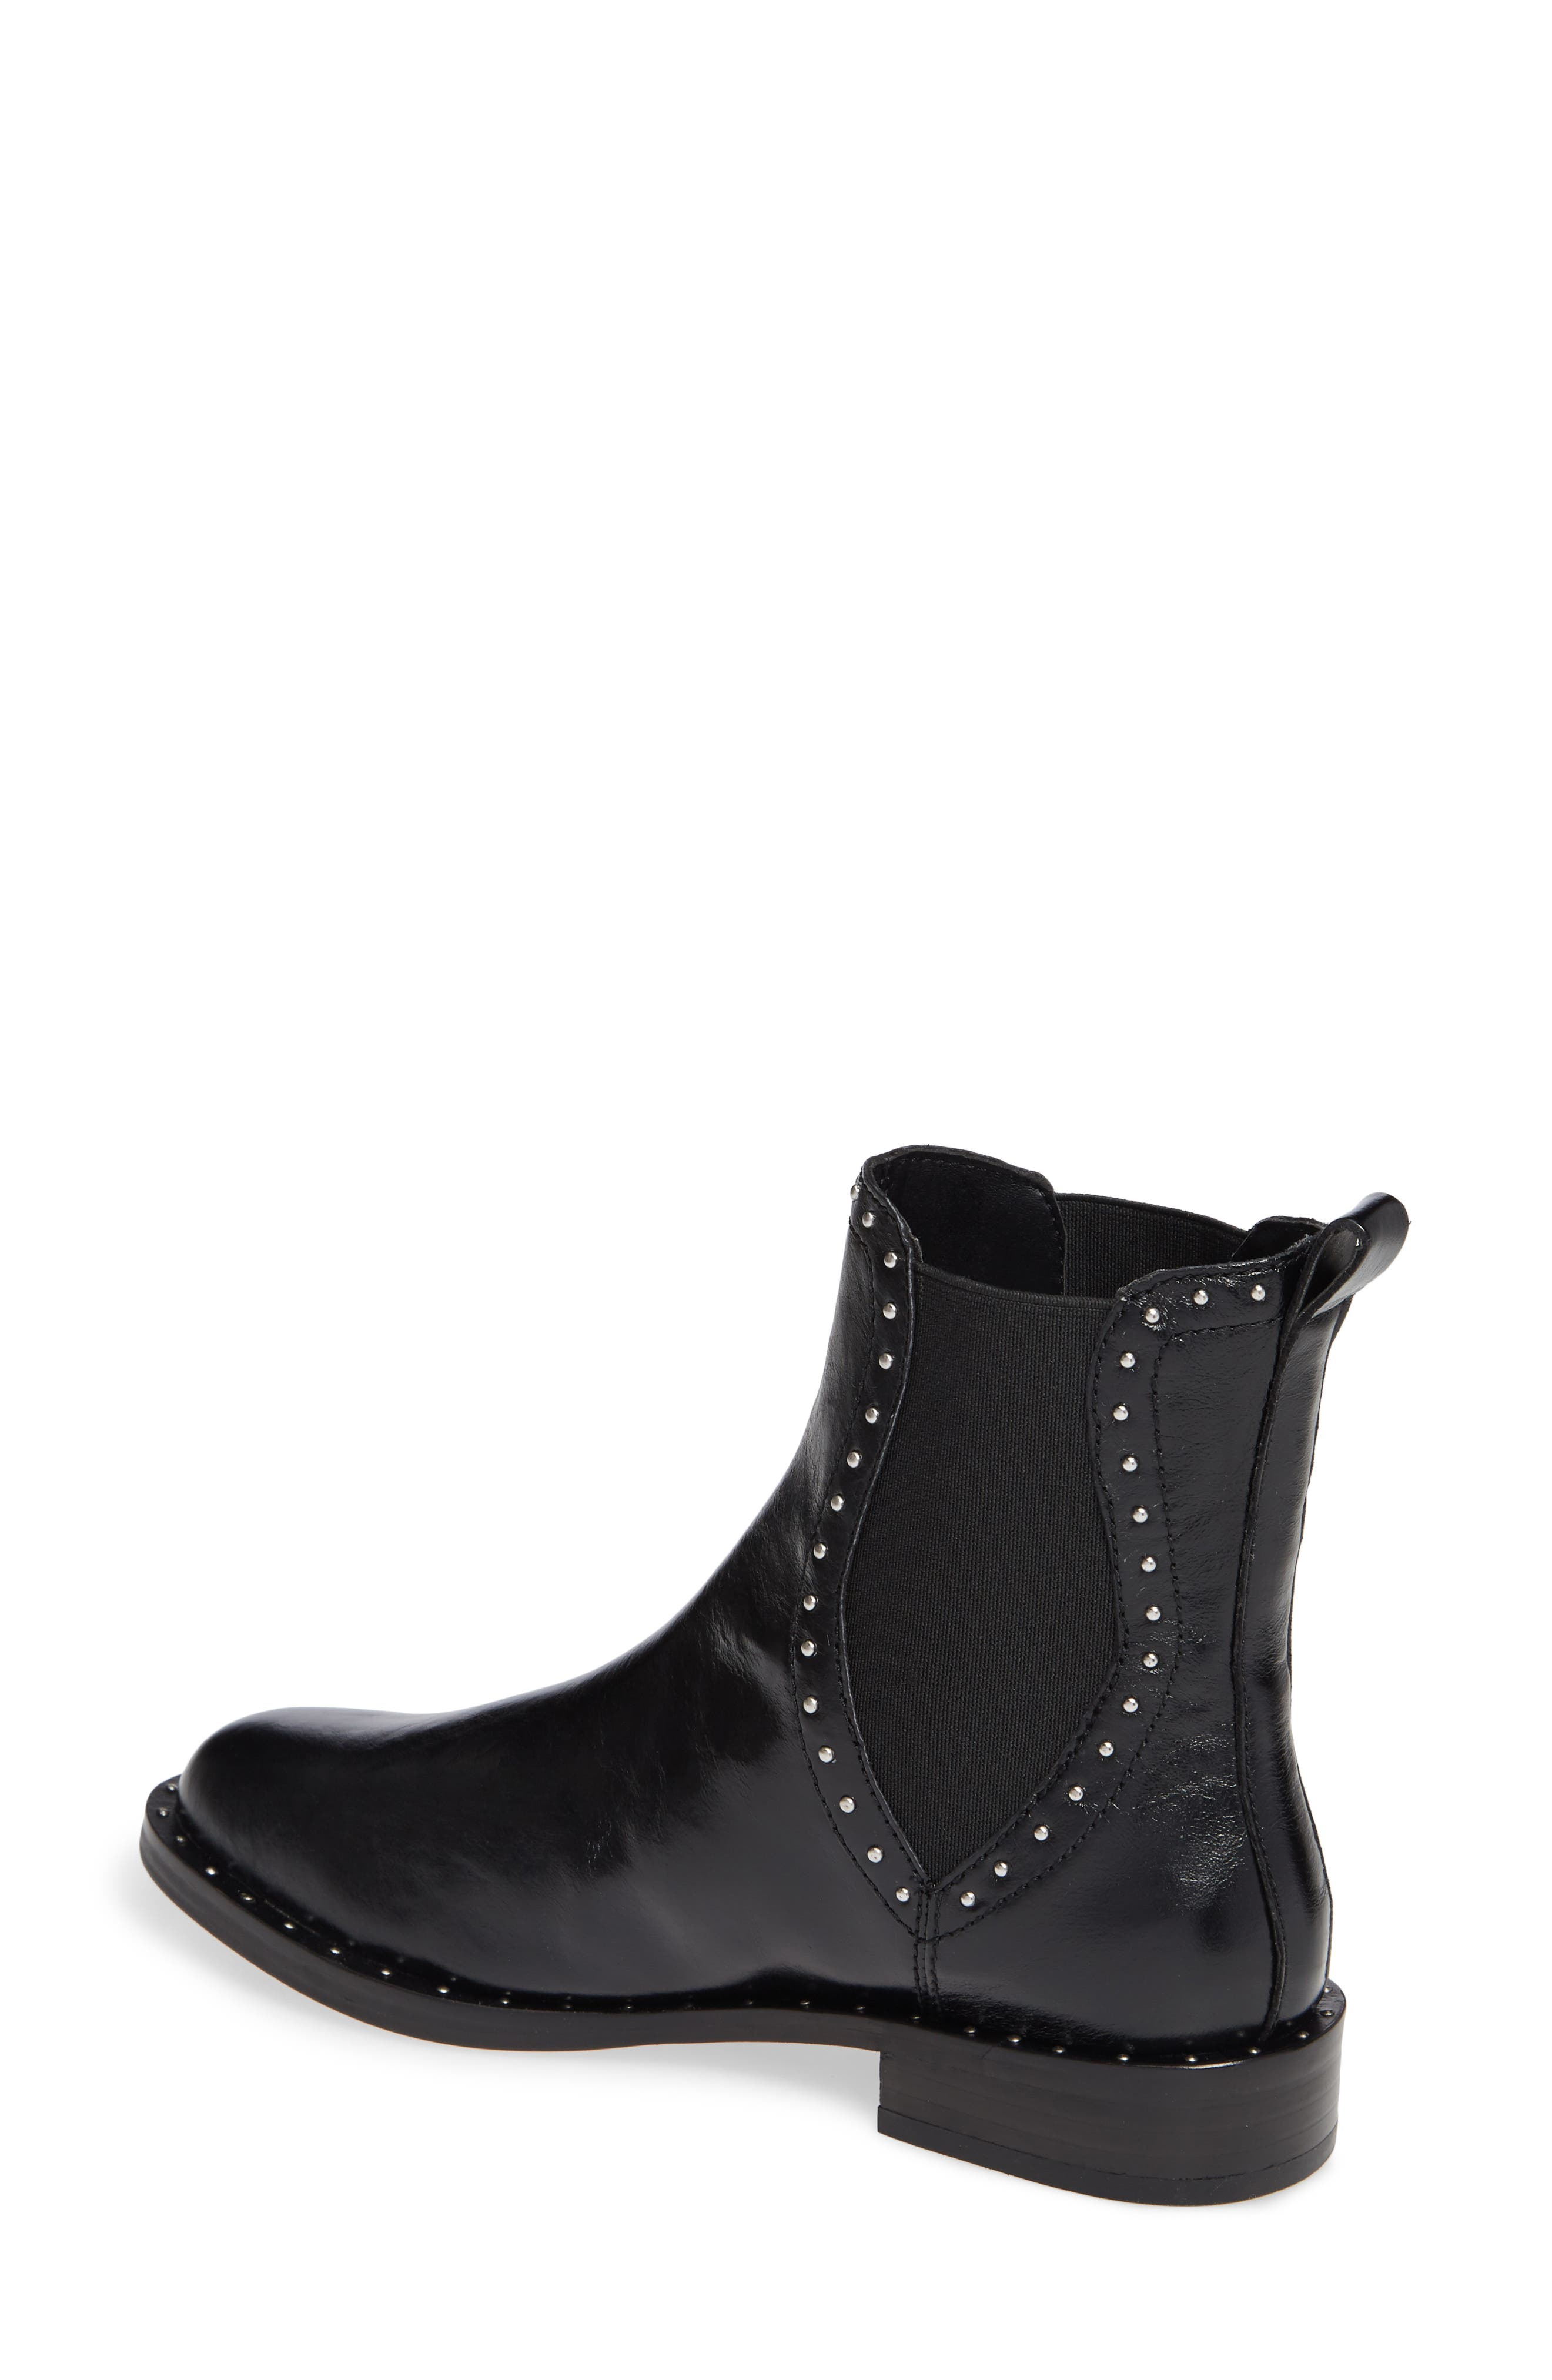 REBECCA MINKOFF, Sabeen Chelsea Bootie, Alternate thumbnail 2, color, BLACK LEATHER